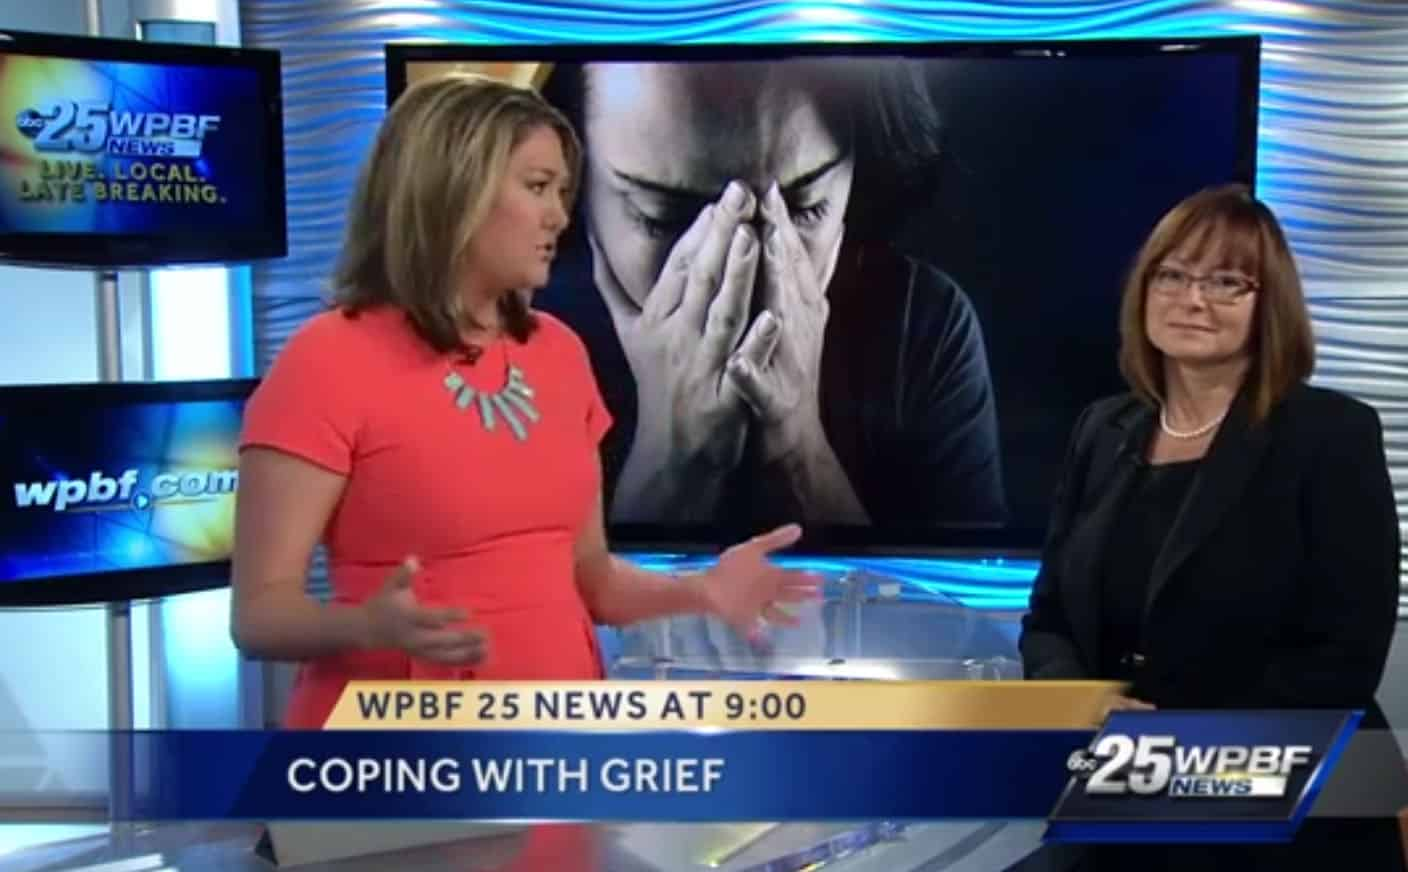 Keiser University Professor Shares Insight Relating to Coping with Grief In the Face of Tragedy